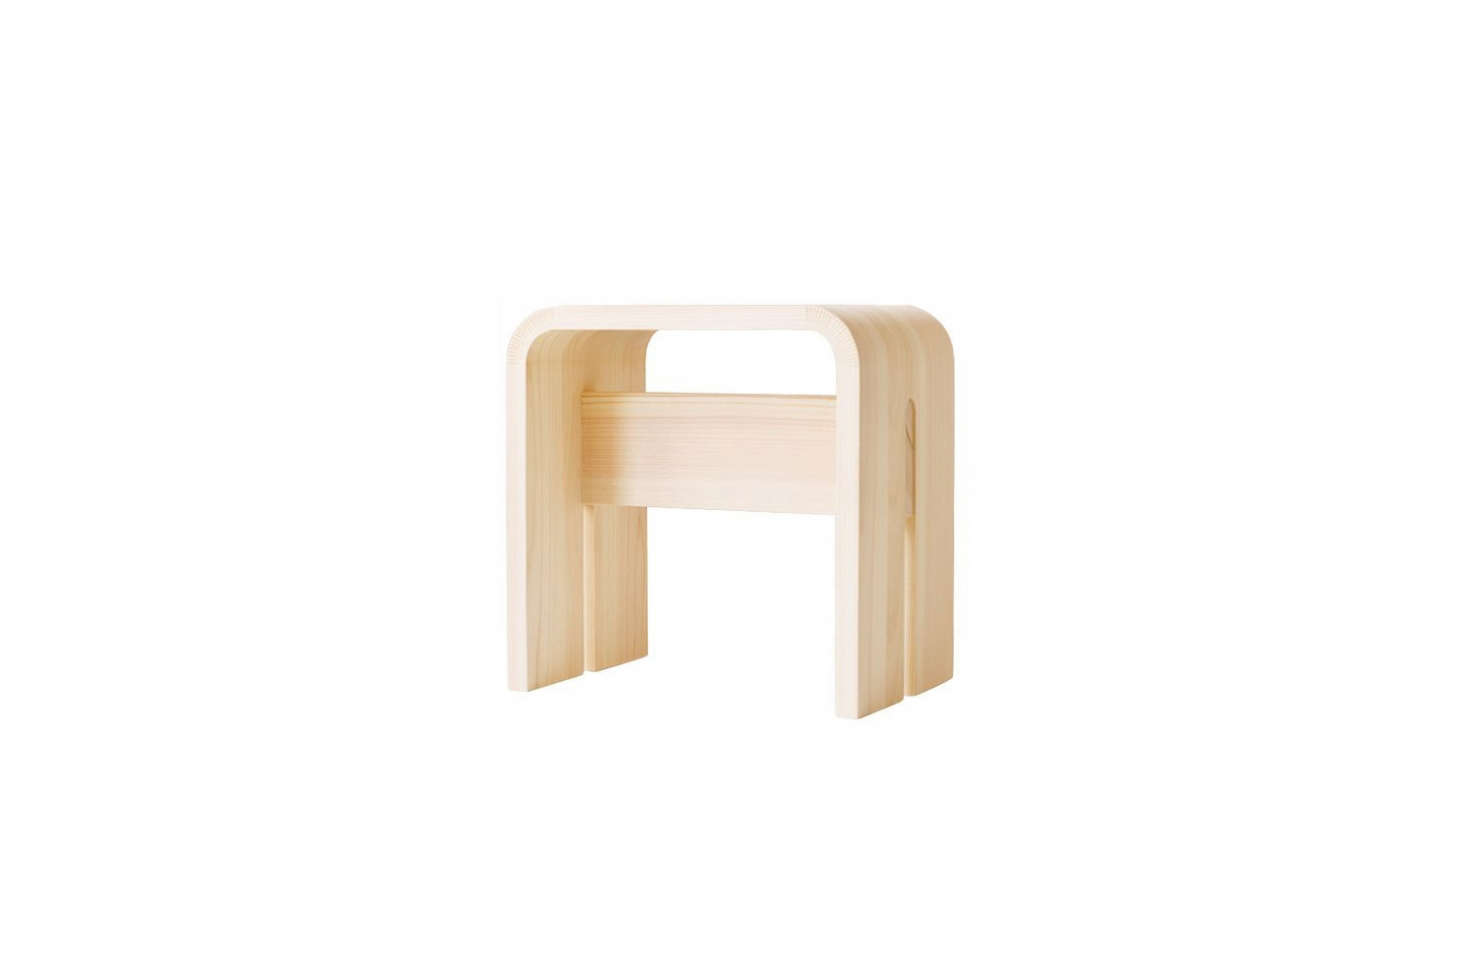 TheHinoki Bath Stool by designer Makoto Koizumi is handmade of bent Kiso Hinoki; $9.65 for the small size at Analogue Life. For more, see Easy Pieces: Best Sauna Stools for the Bath.